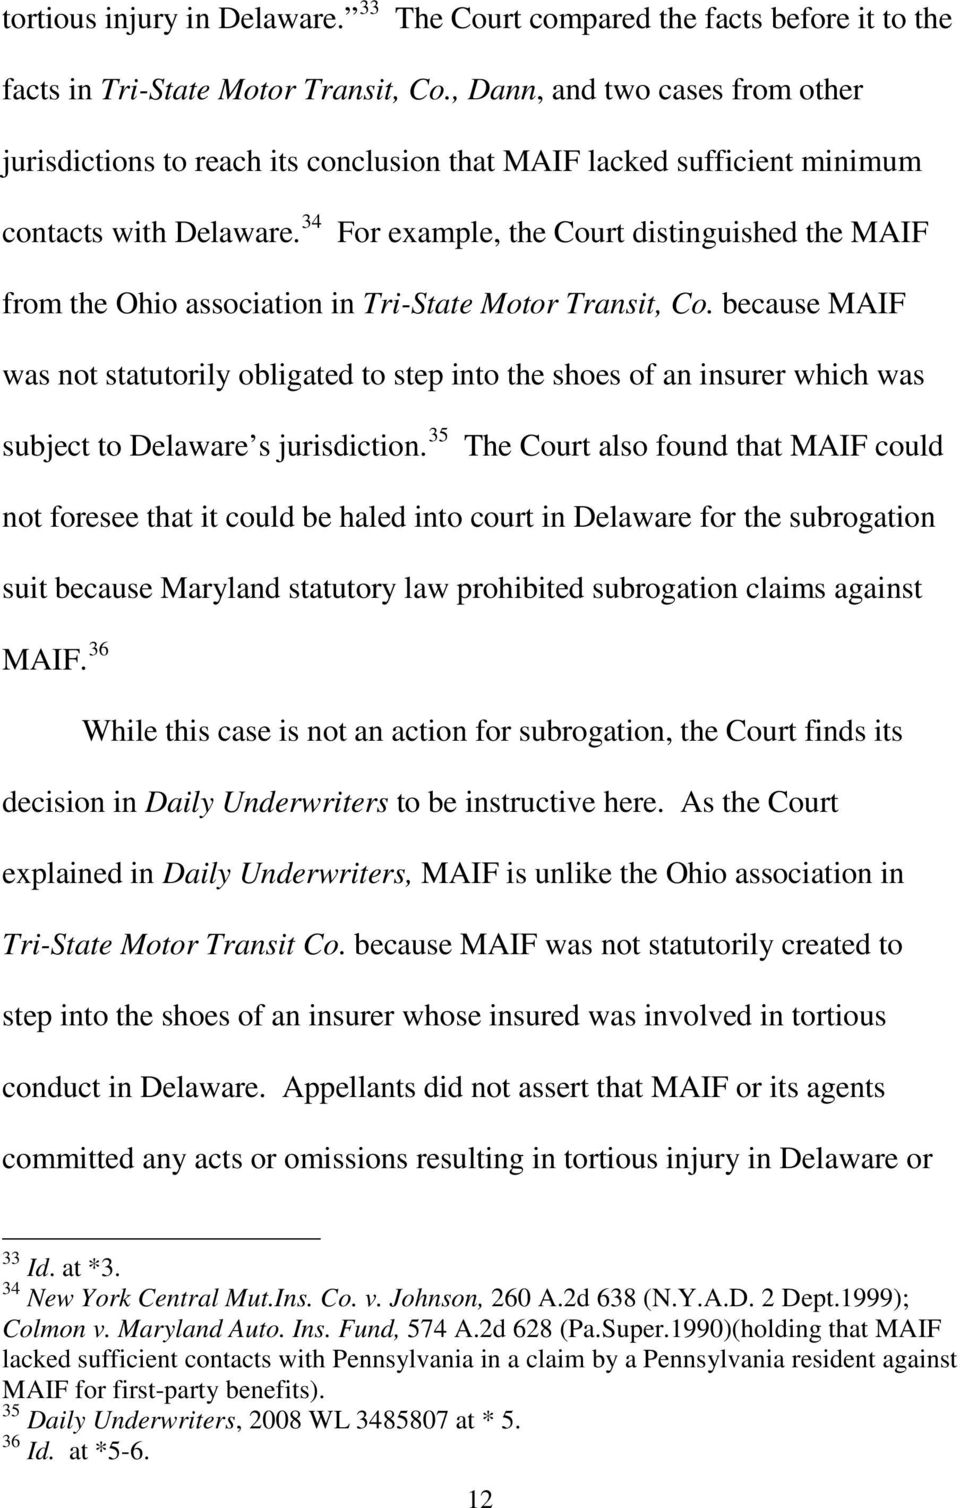 34 For example, the Court distinguished the MAIF from the Ohio association in Tri-State Motor Transit, Co.